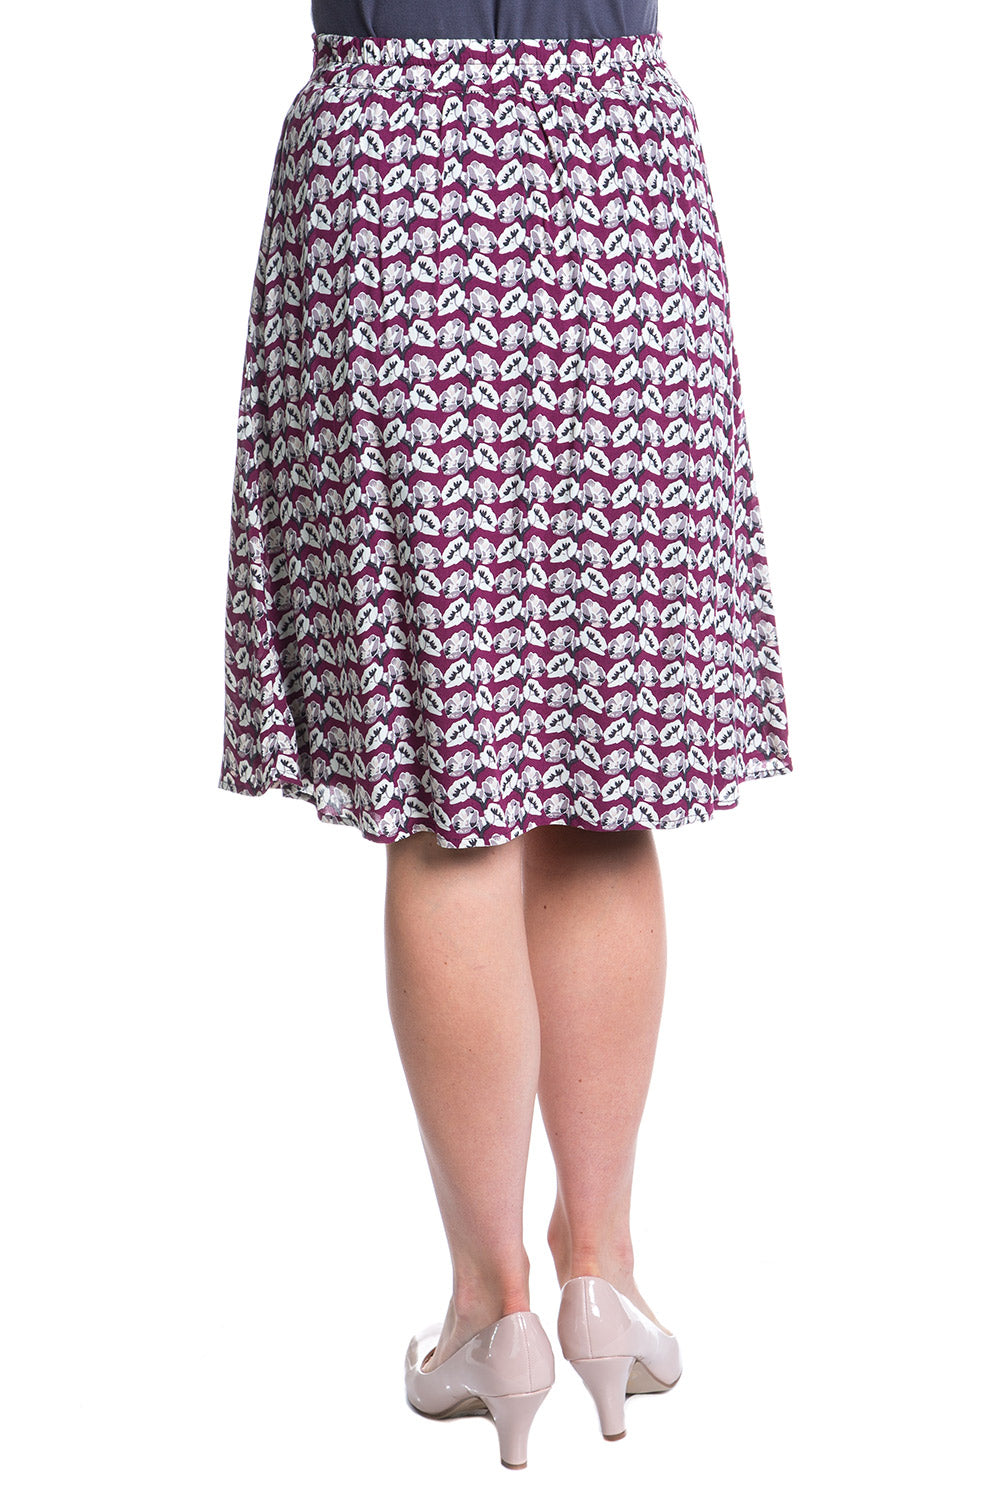 Type 2 Cherry Groves Skirt